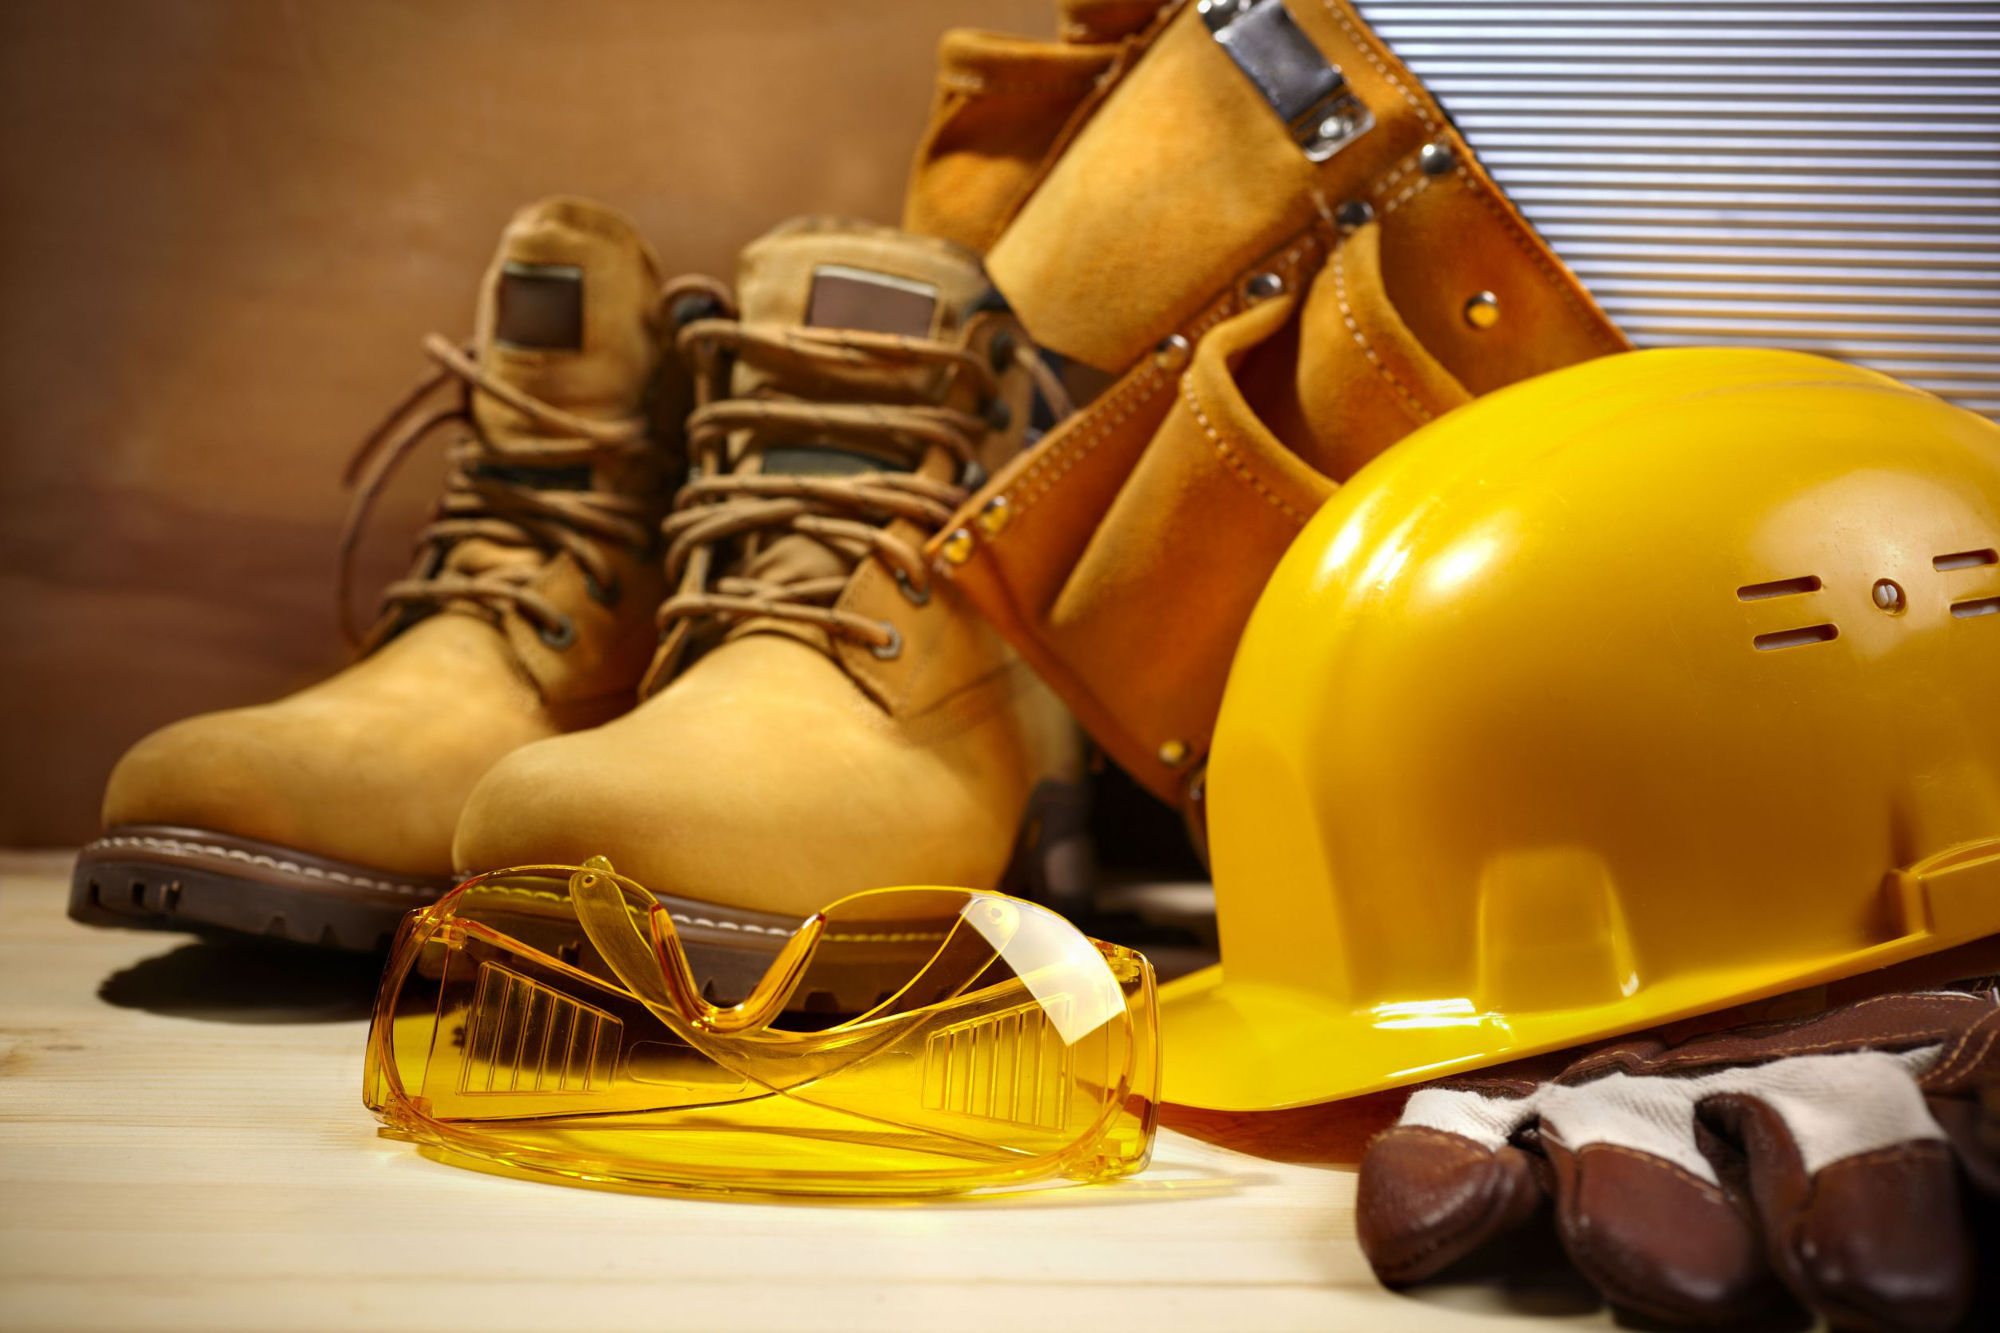 To work in the construction industry it is a legal requirement to have your white card course training.